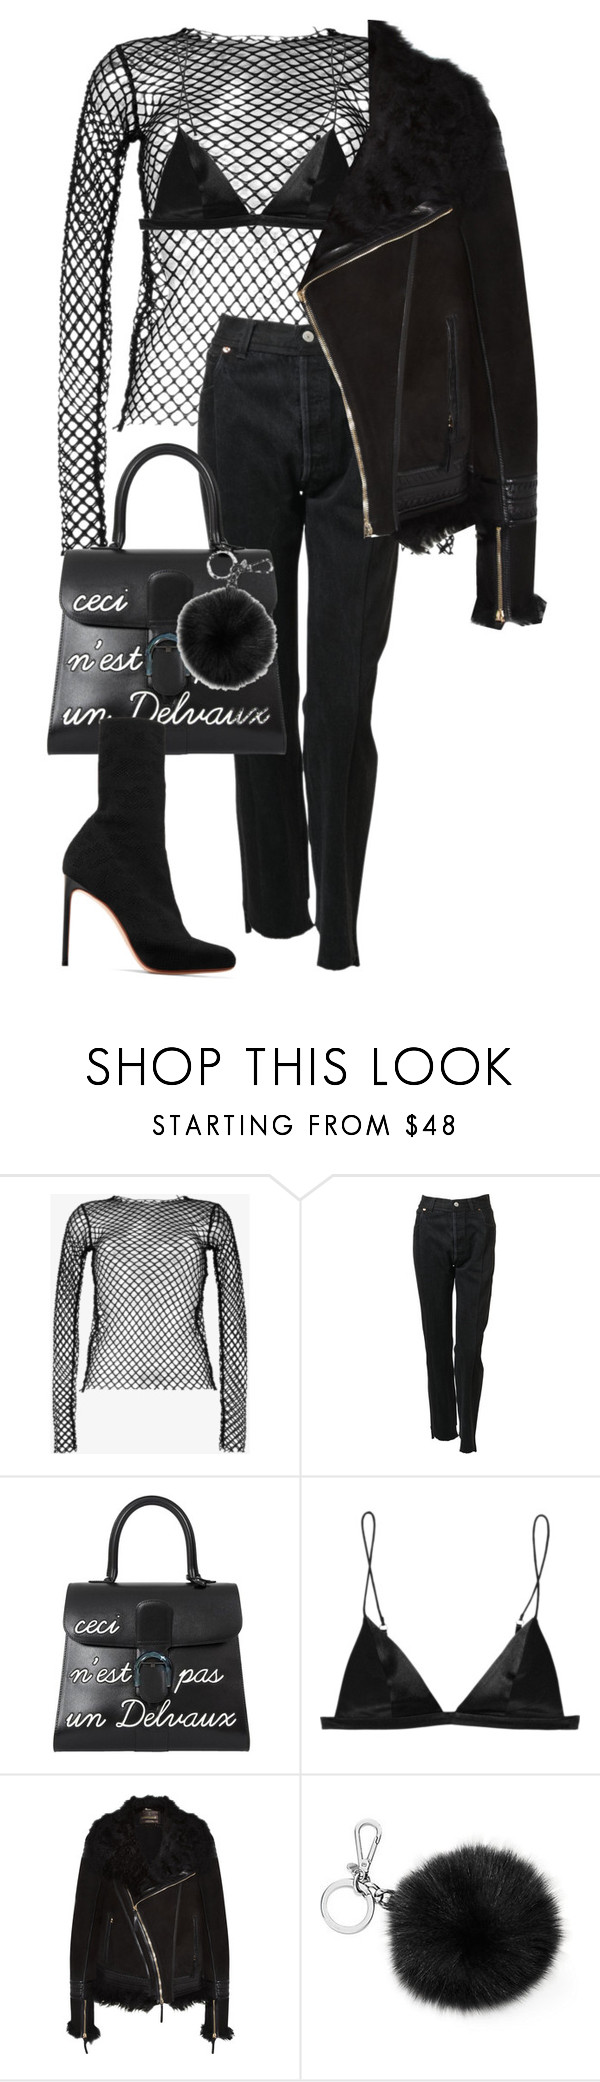 """""""Don't worry, baby"""" by nikkischeper ❤ liked on Polyvore featuring Dries Van Noten, Vetements, Delvaux, T By Alexander Wang, Roberto Cavalli, Michael Kors and Francesco Russo"""